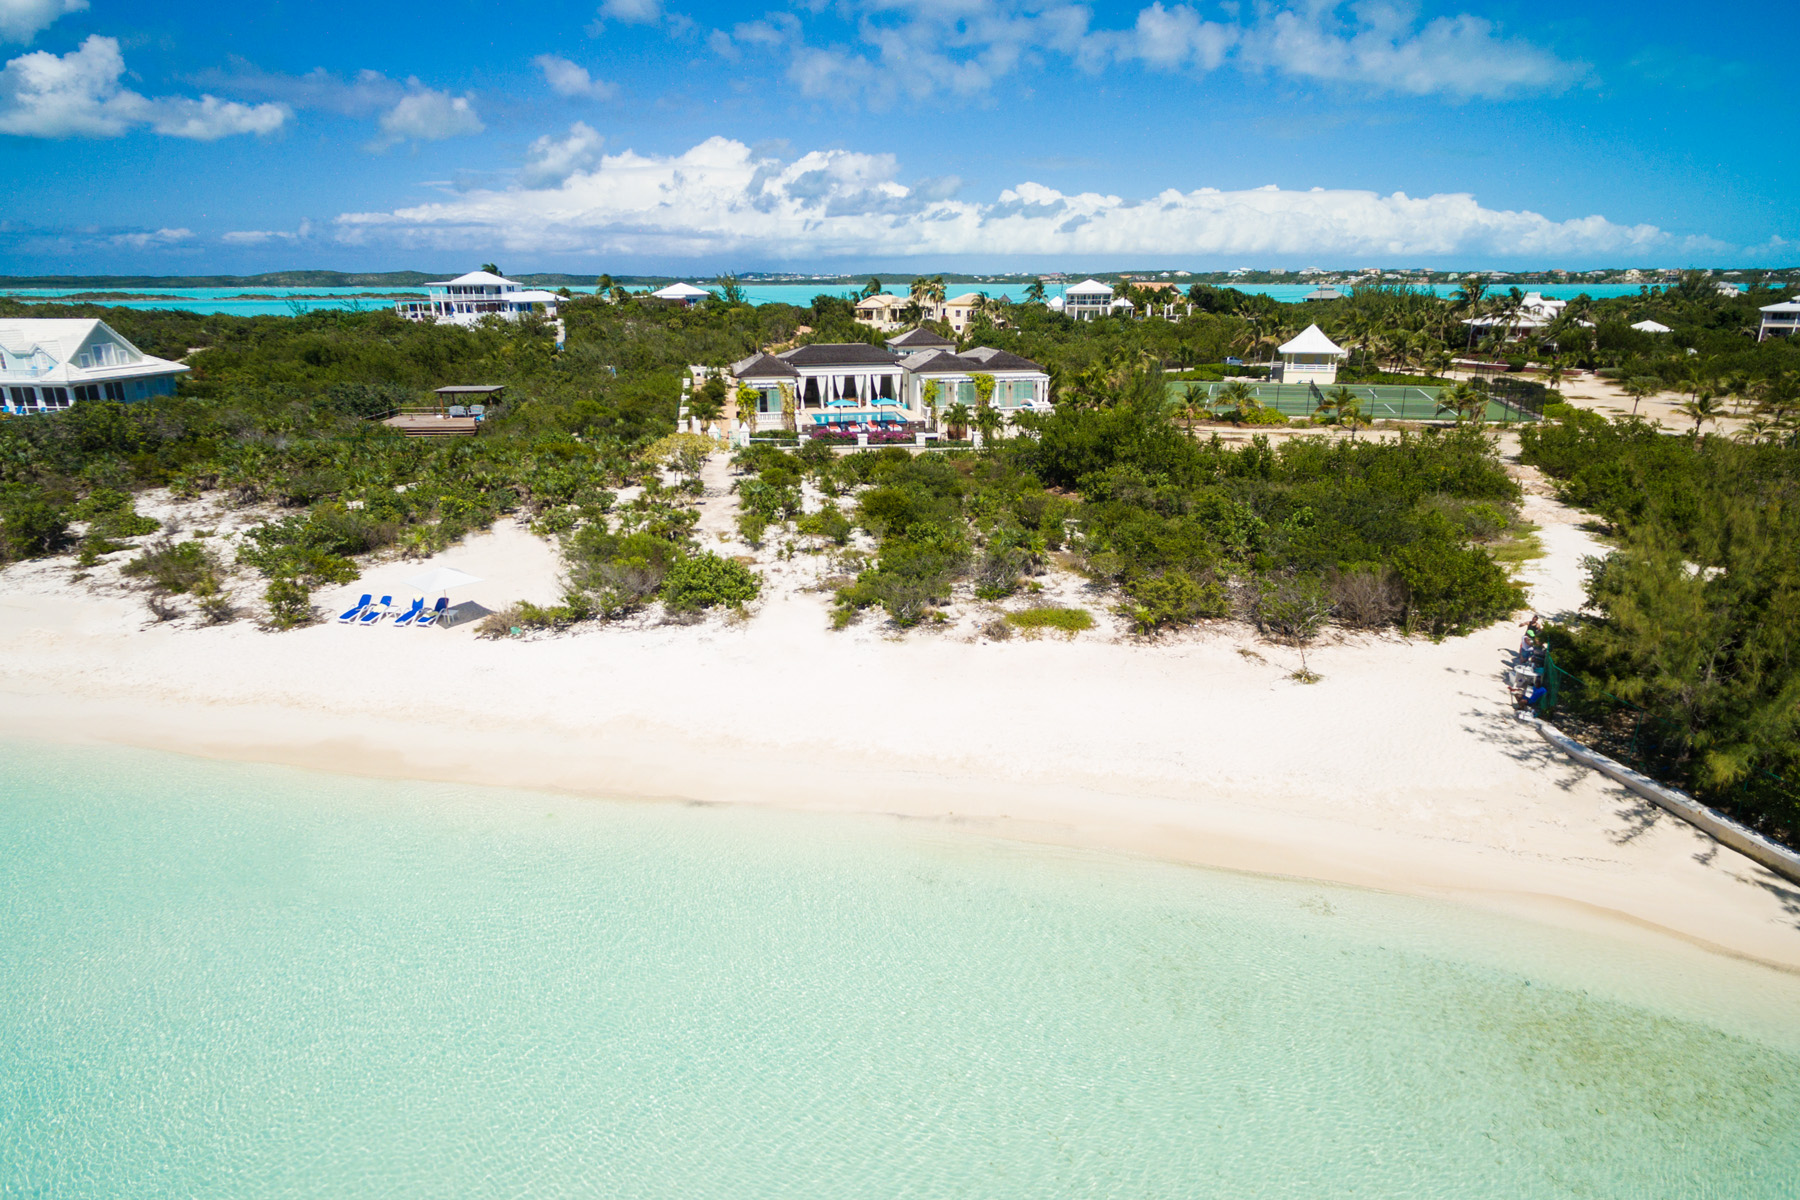 Single Family Home for Sale at The Beach House Beachfront Taylor Bay, Providenciales, TCI Turks And Caicos Islands